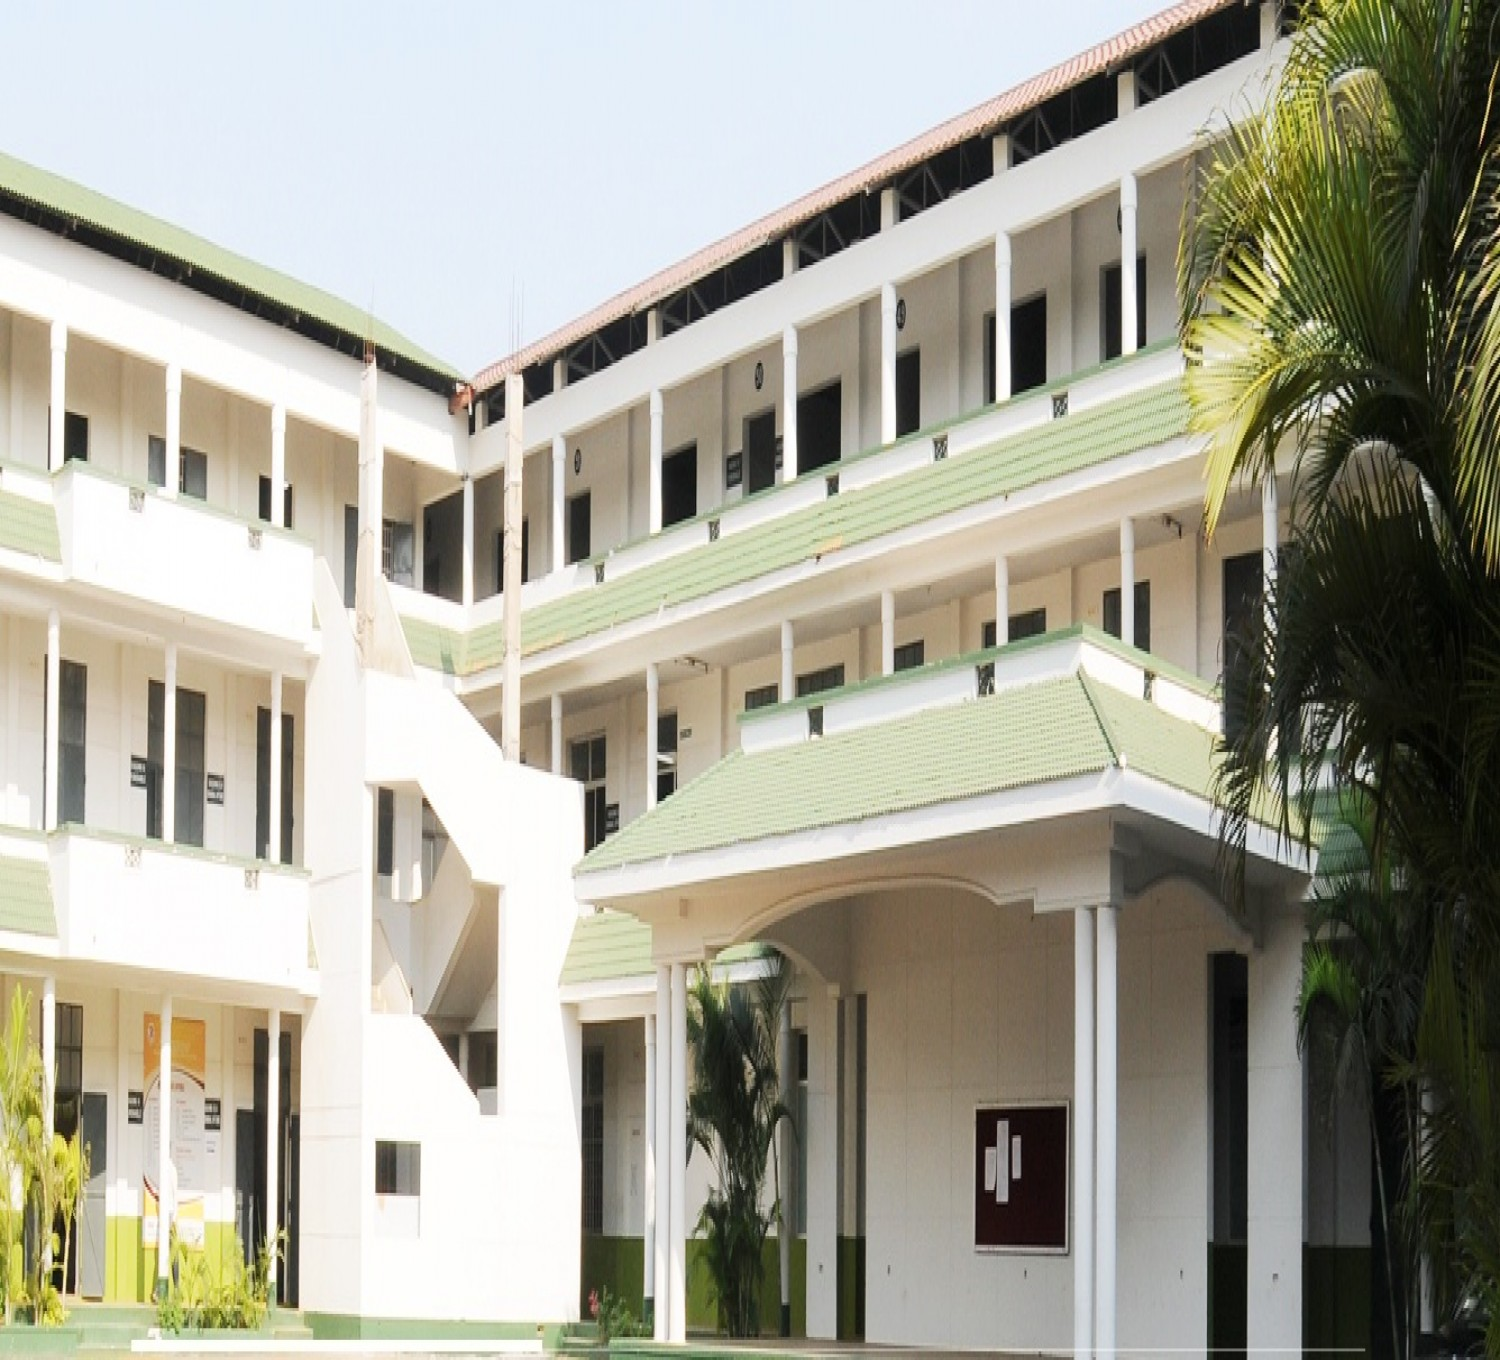 Sri Jayendra Saraswathy Maha Vidyalaya College of Arts and Science-cover